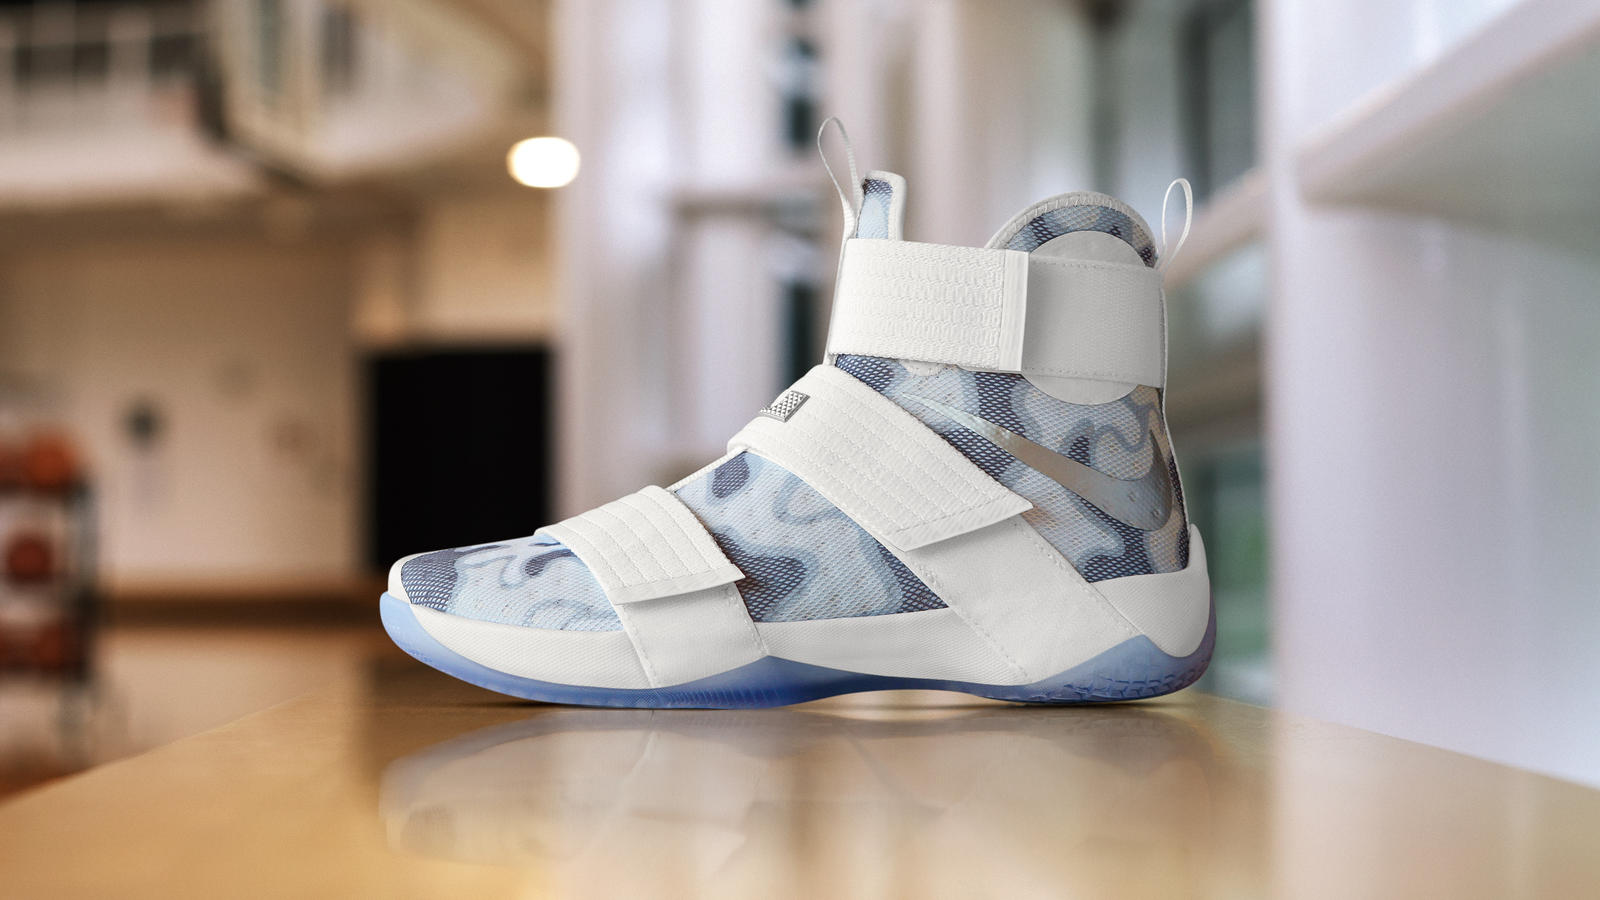 The Nike Zoom LeBron Soldier 10 'White